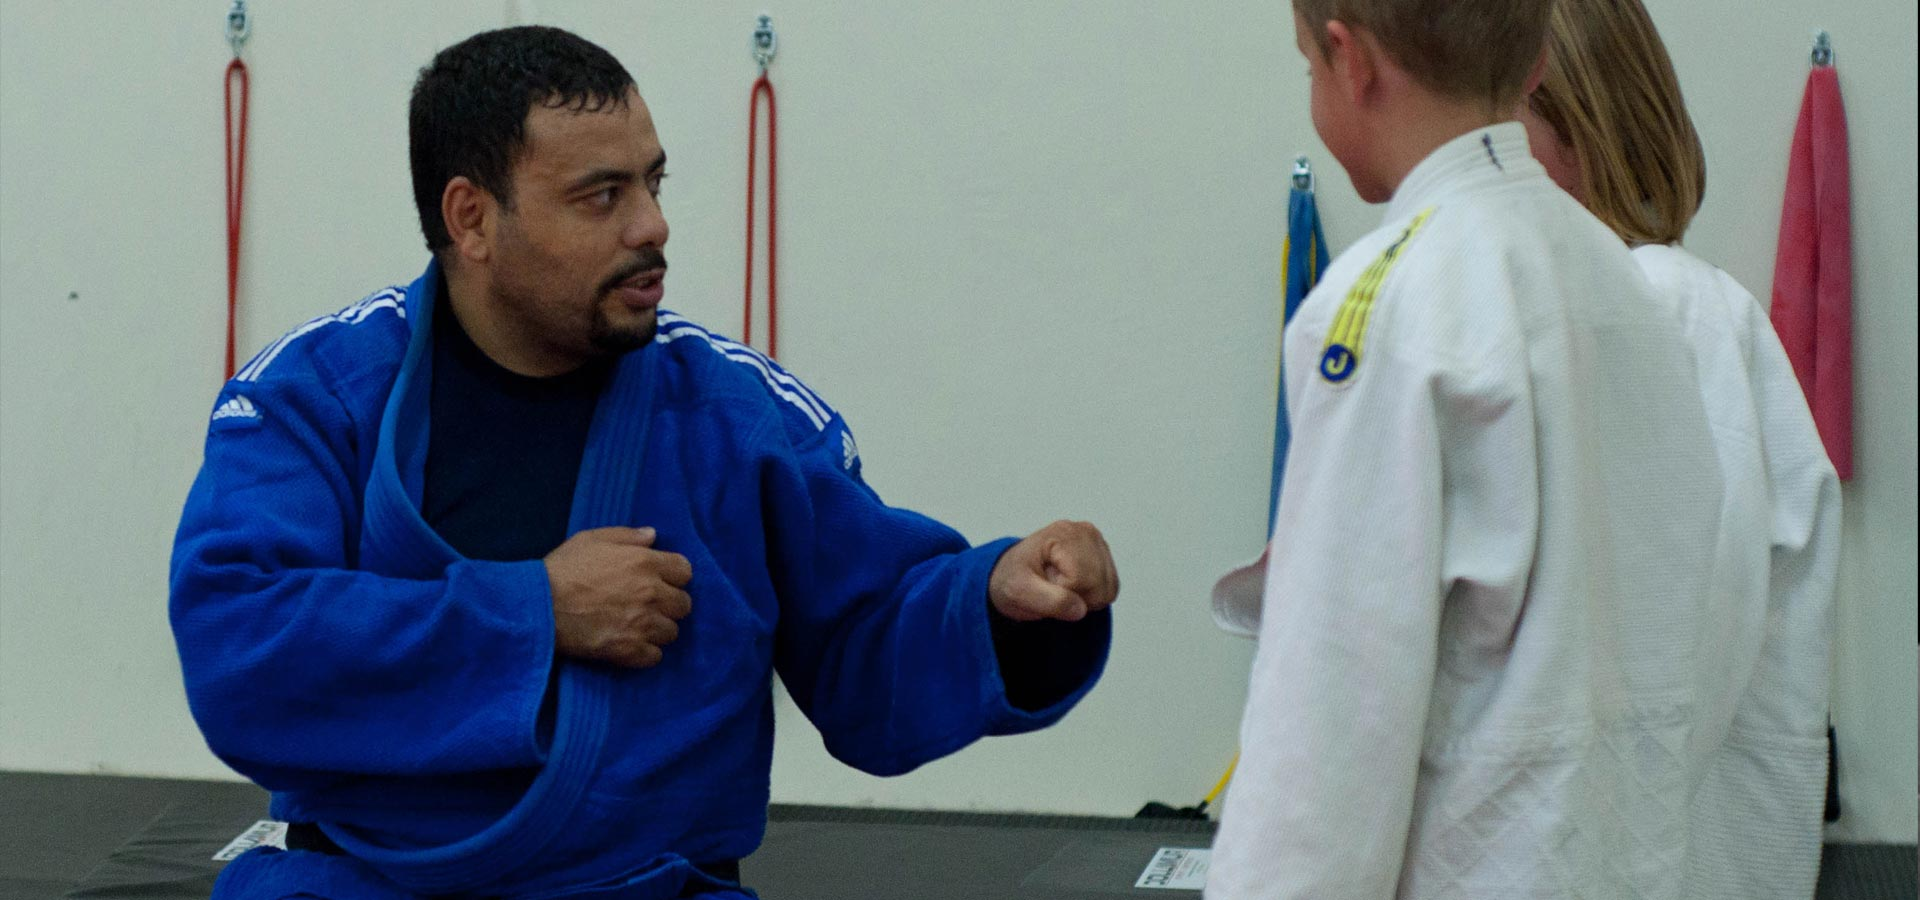 Southwest Judo Academy – Dojo of champions, taught and